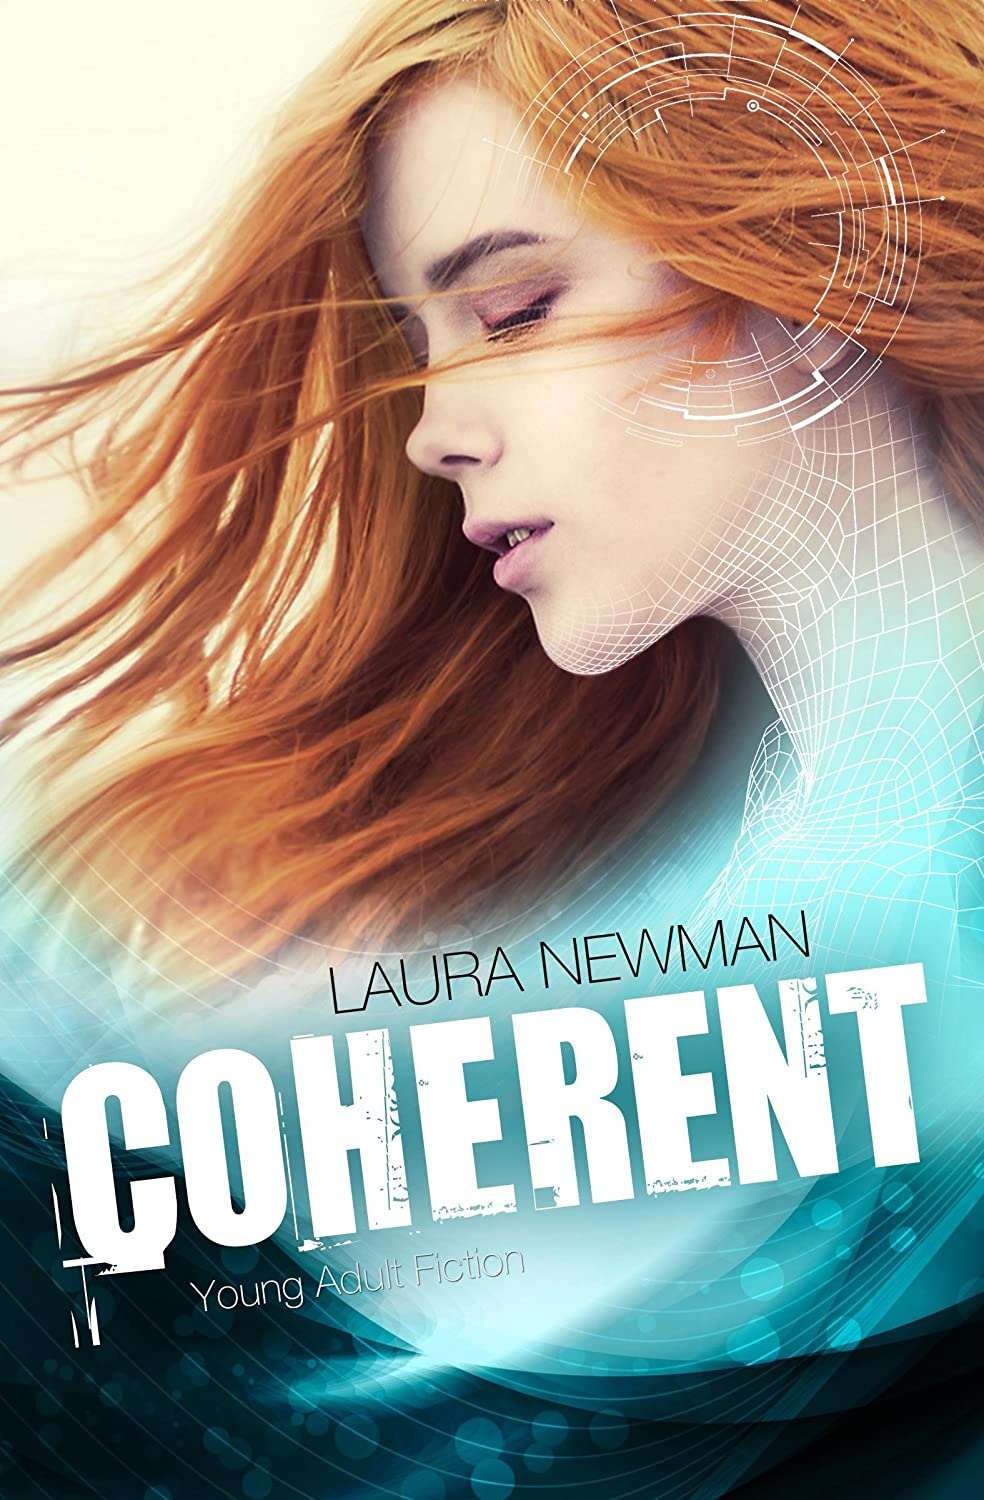 Coherent (Laura Newman)